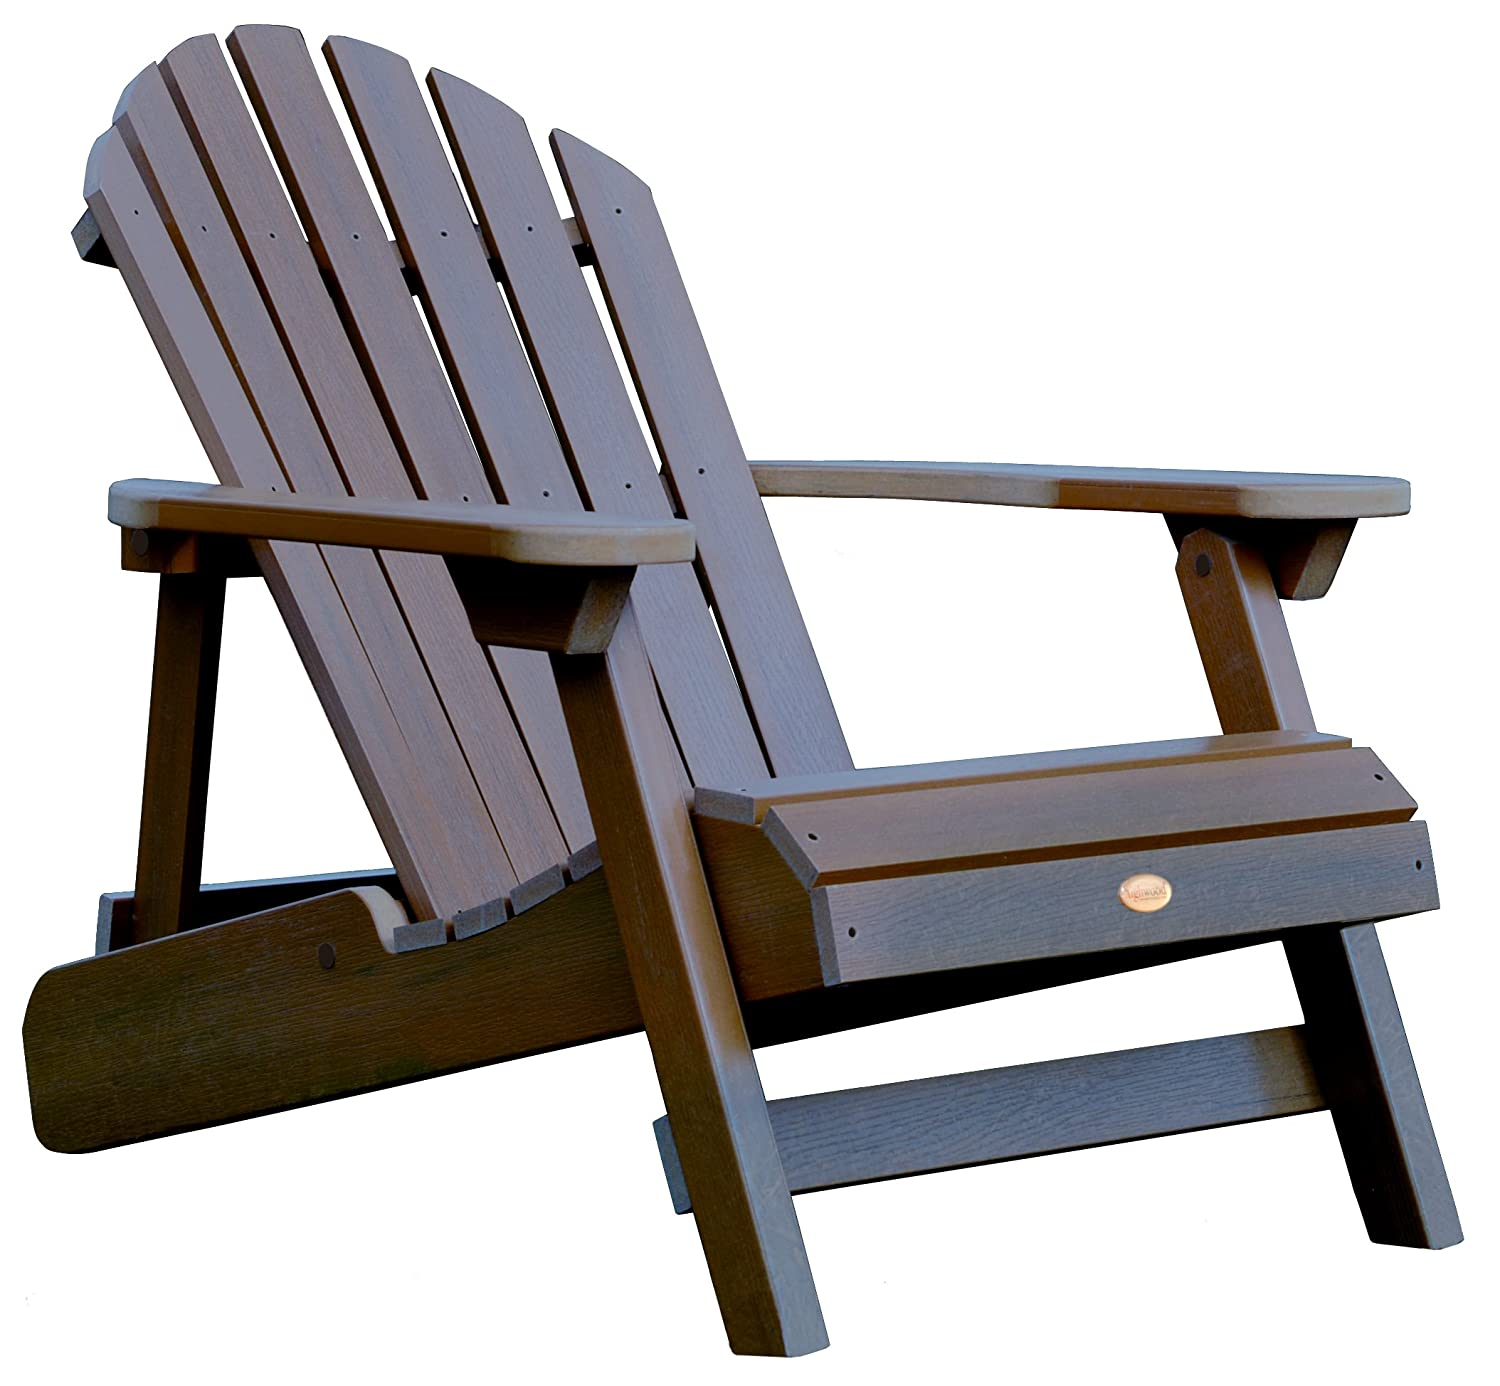 Highwood Adirondack Chair Heavy Duty Adirondack Chairs For Large People For Big